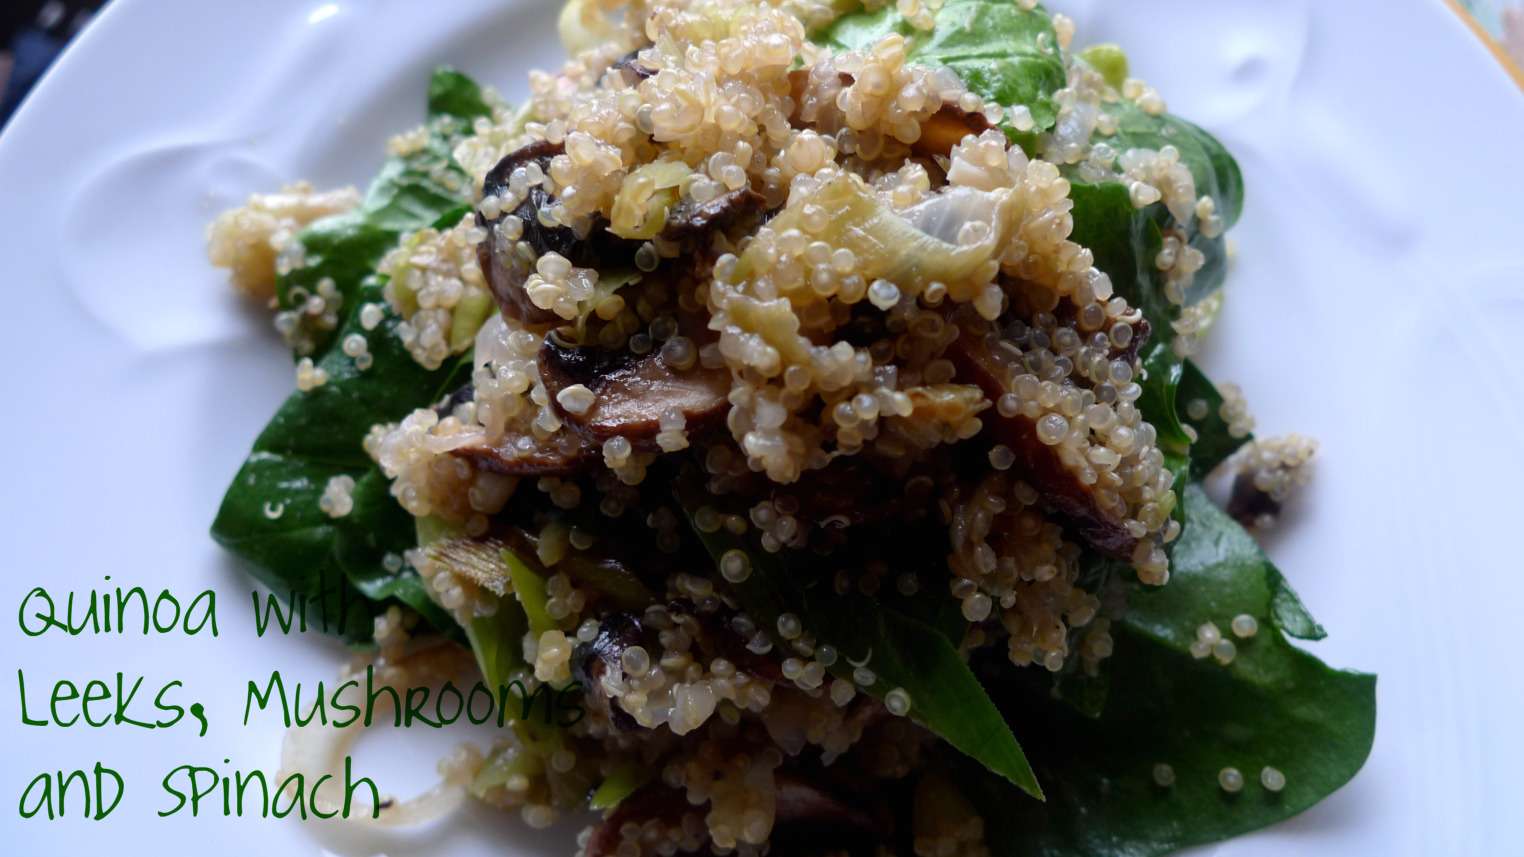 Quinoa with Leeks, Mushrooms & Spinach | Gluten Free: Sweets At Vicky ...